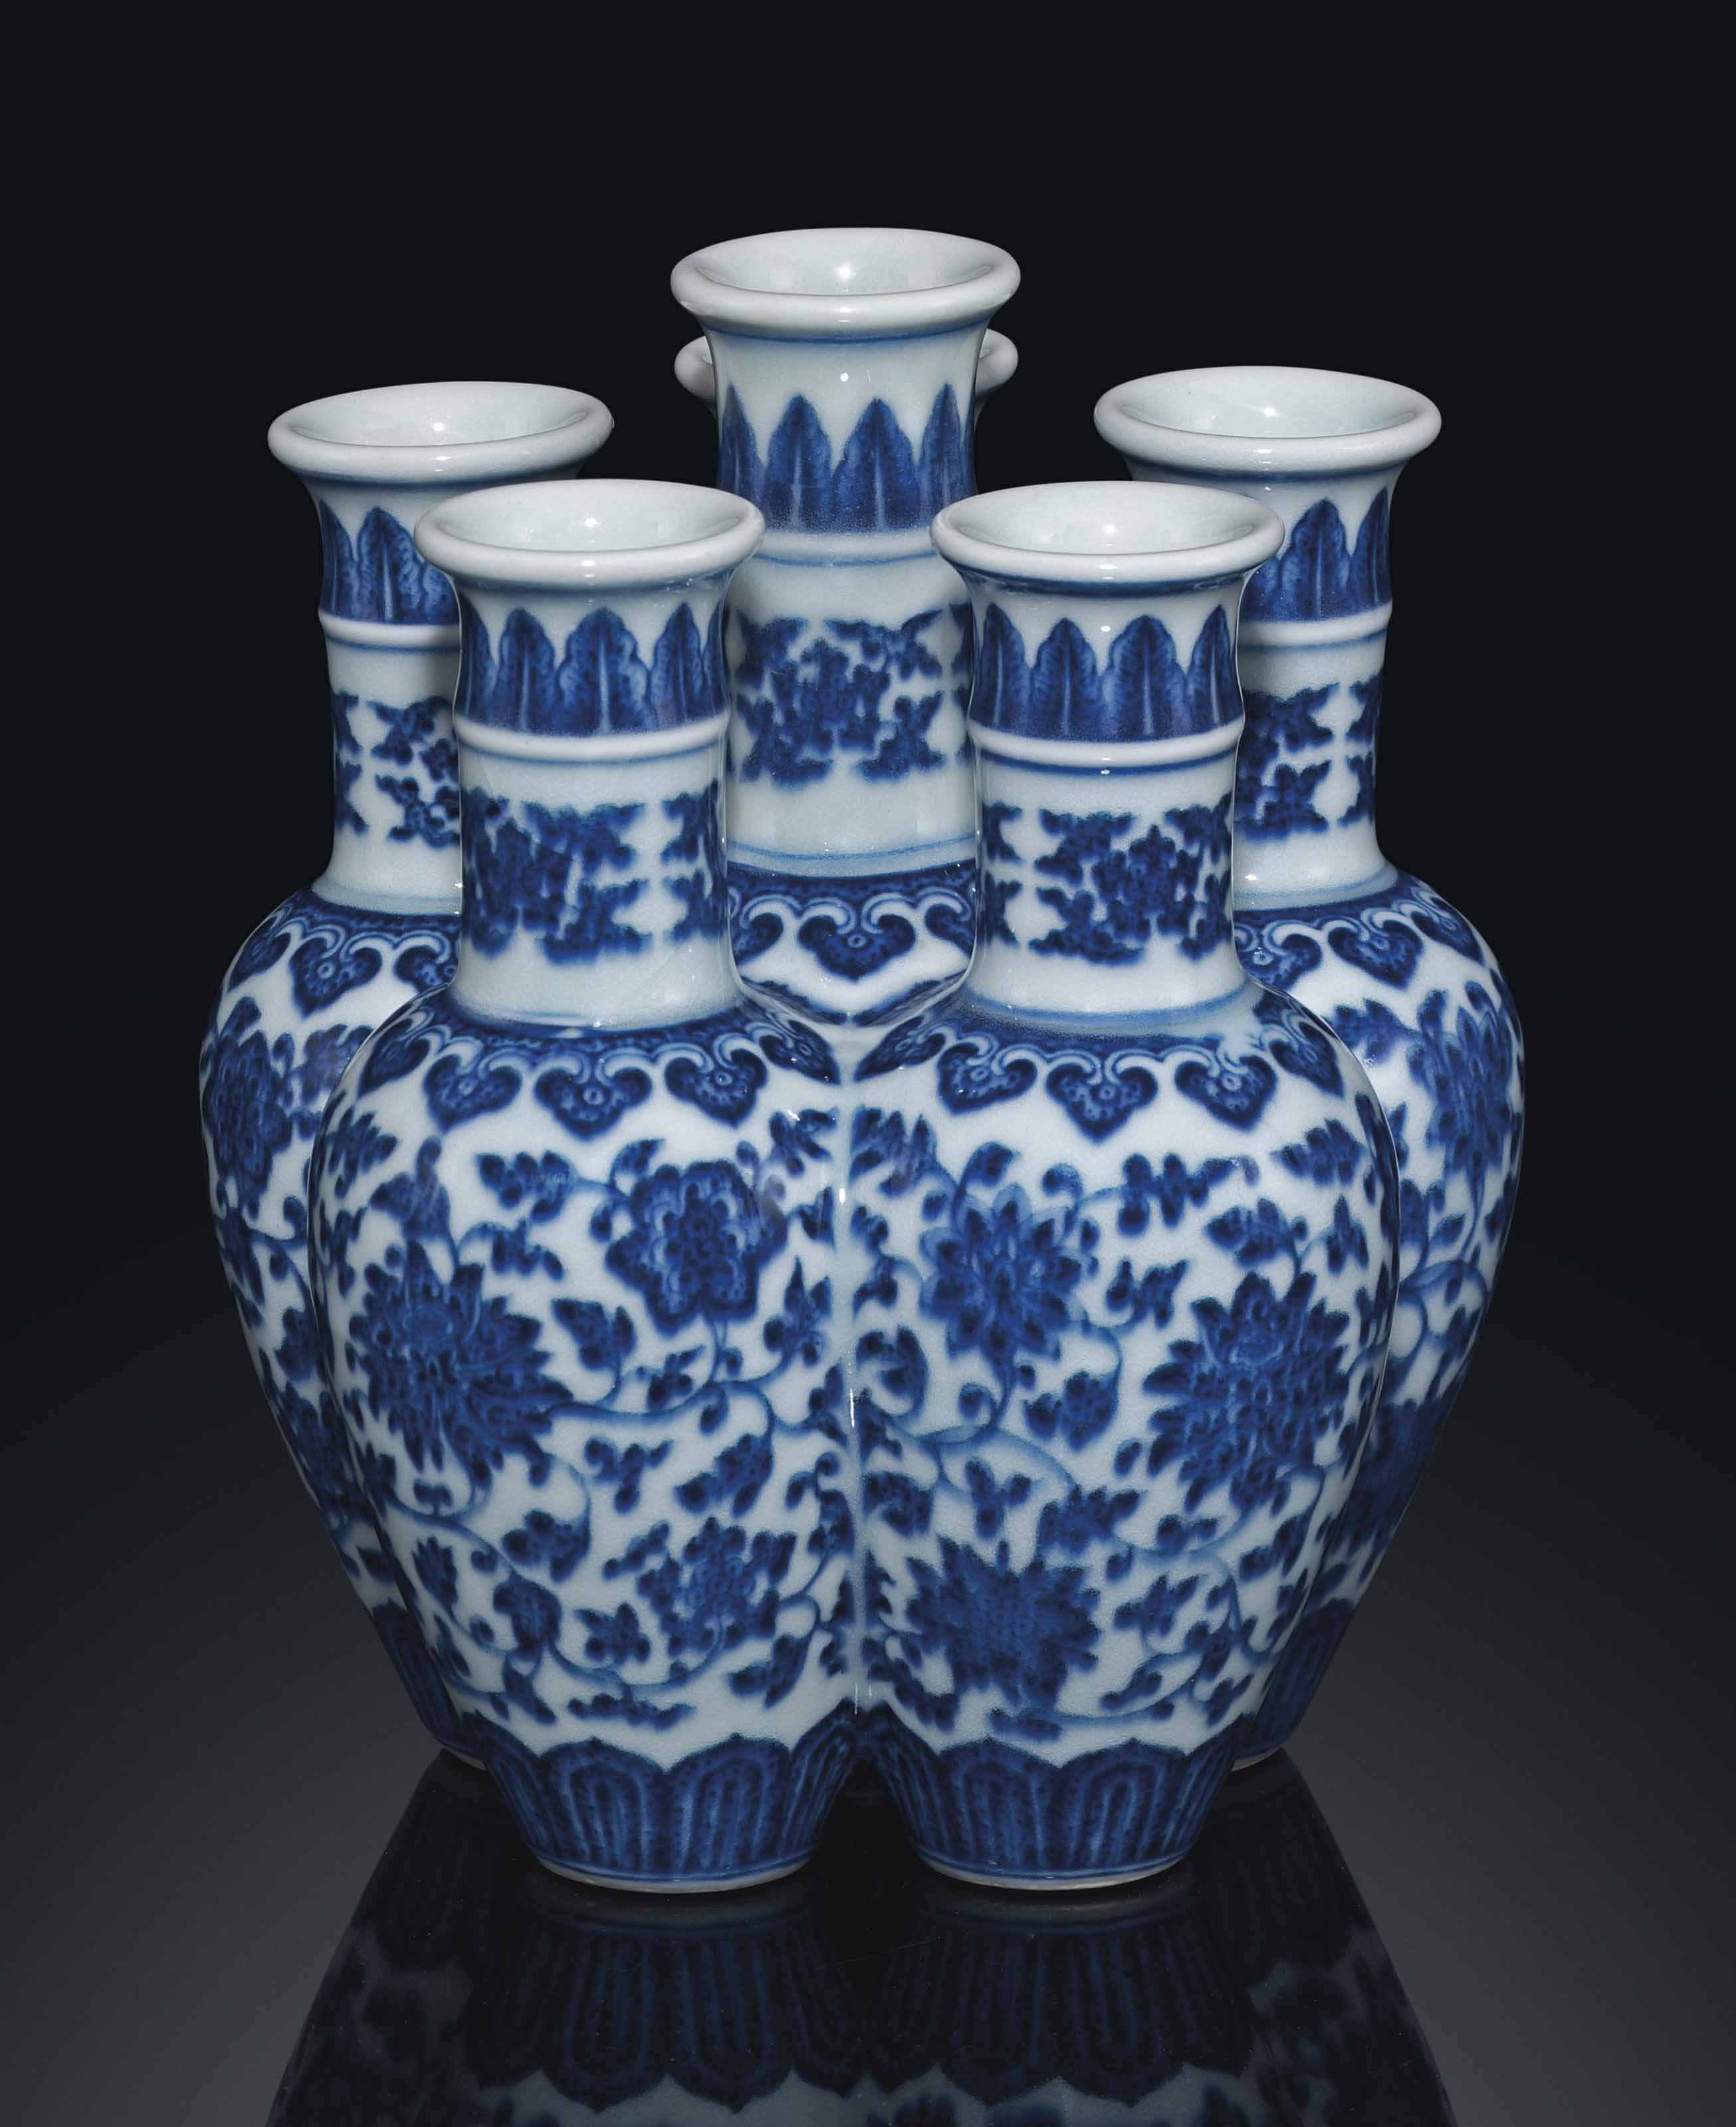 A RARE BLUE AND WHITE CONJOINED VASE